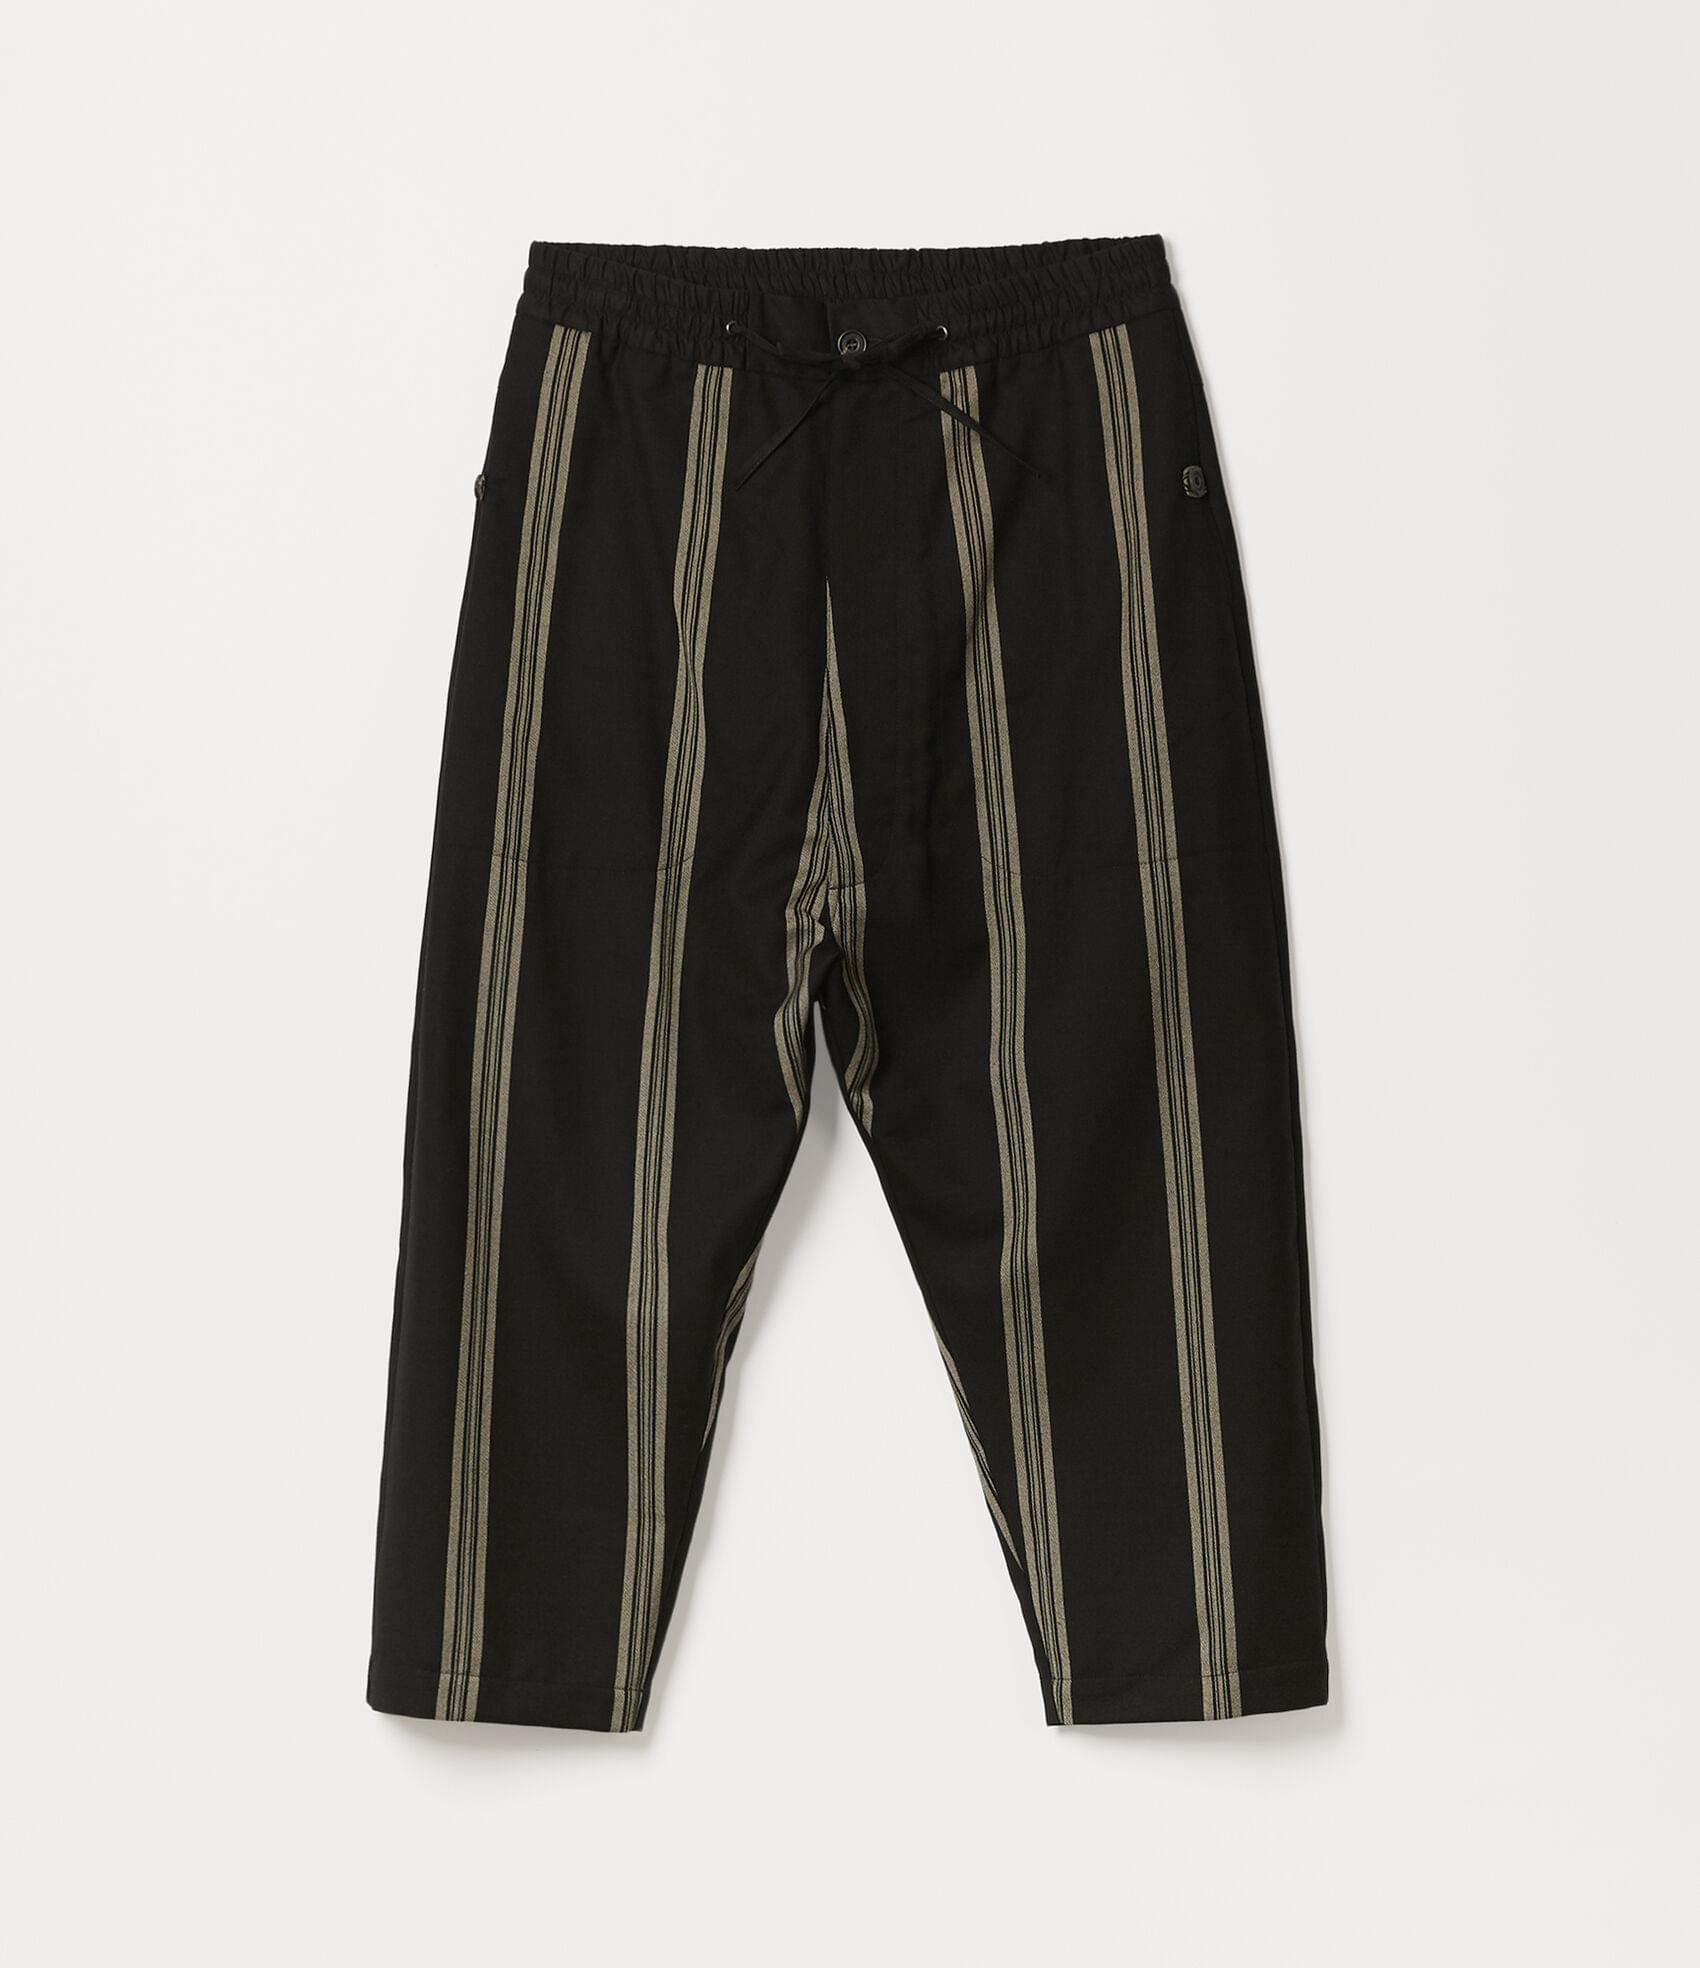 Vivienne Westwood SAMURAI TROUSERS NATURAL STRIPES